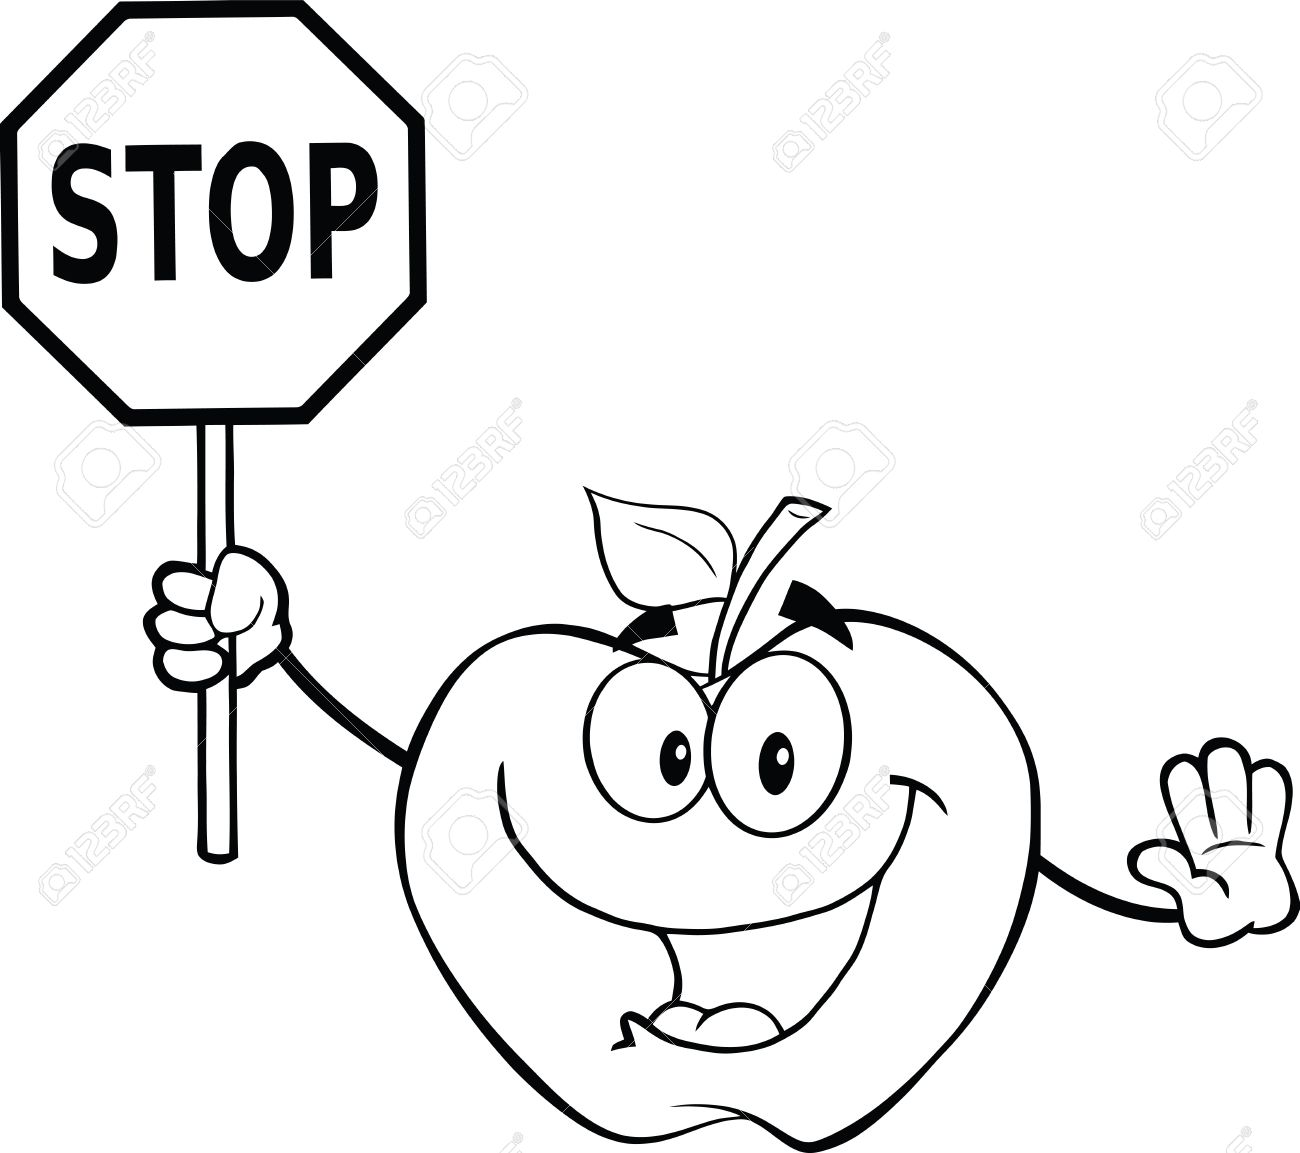 1300x1153 Black And White Apple Cartoon Mascot Character Holding A Stop